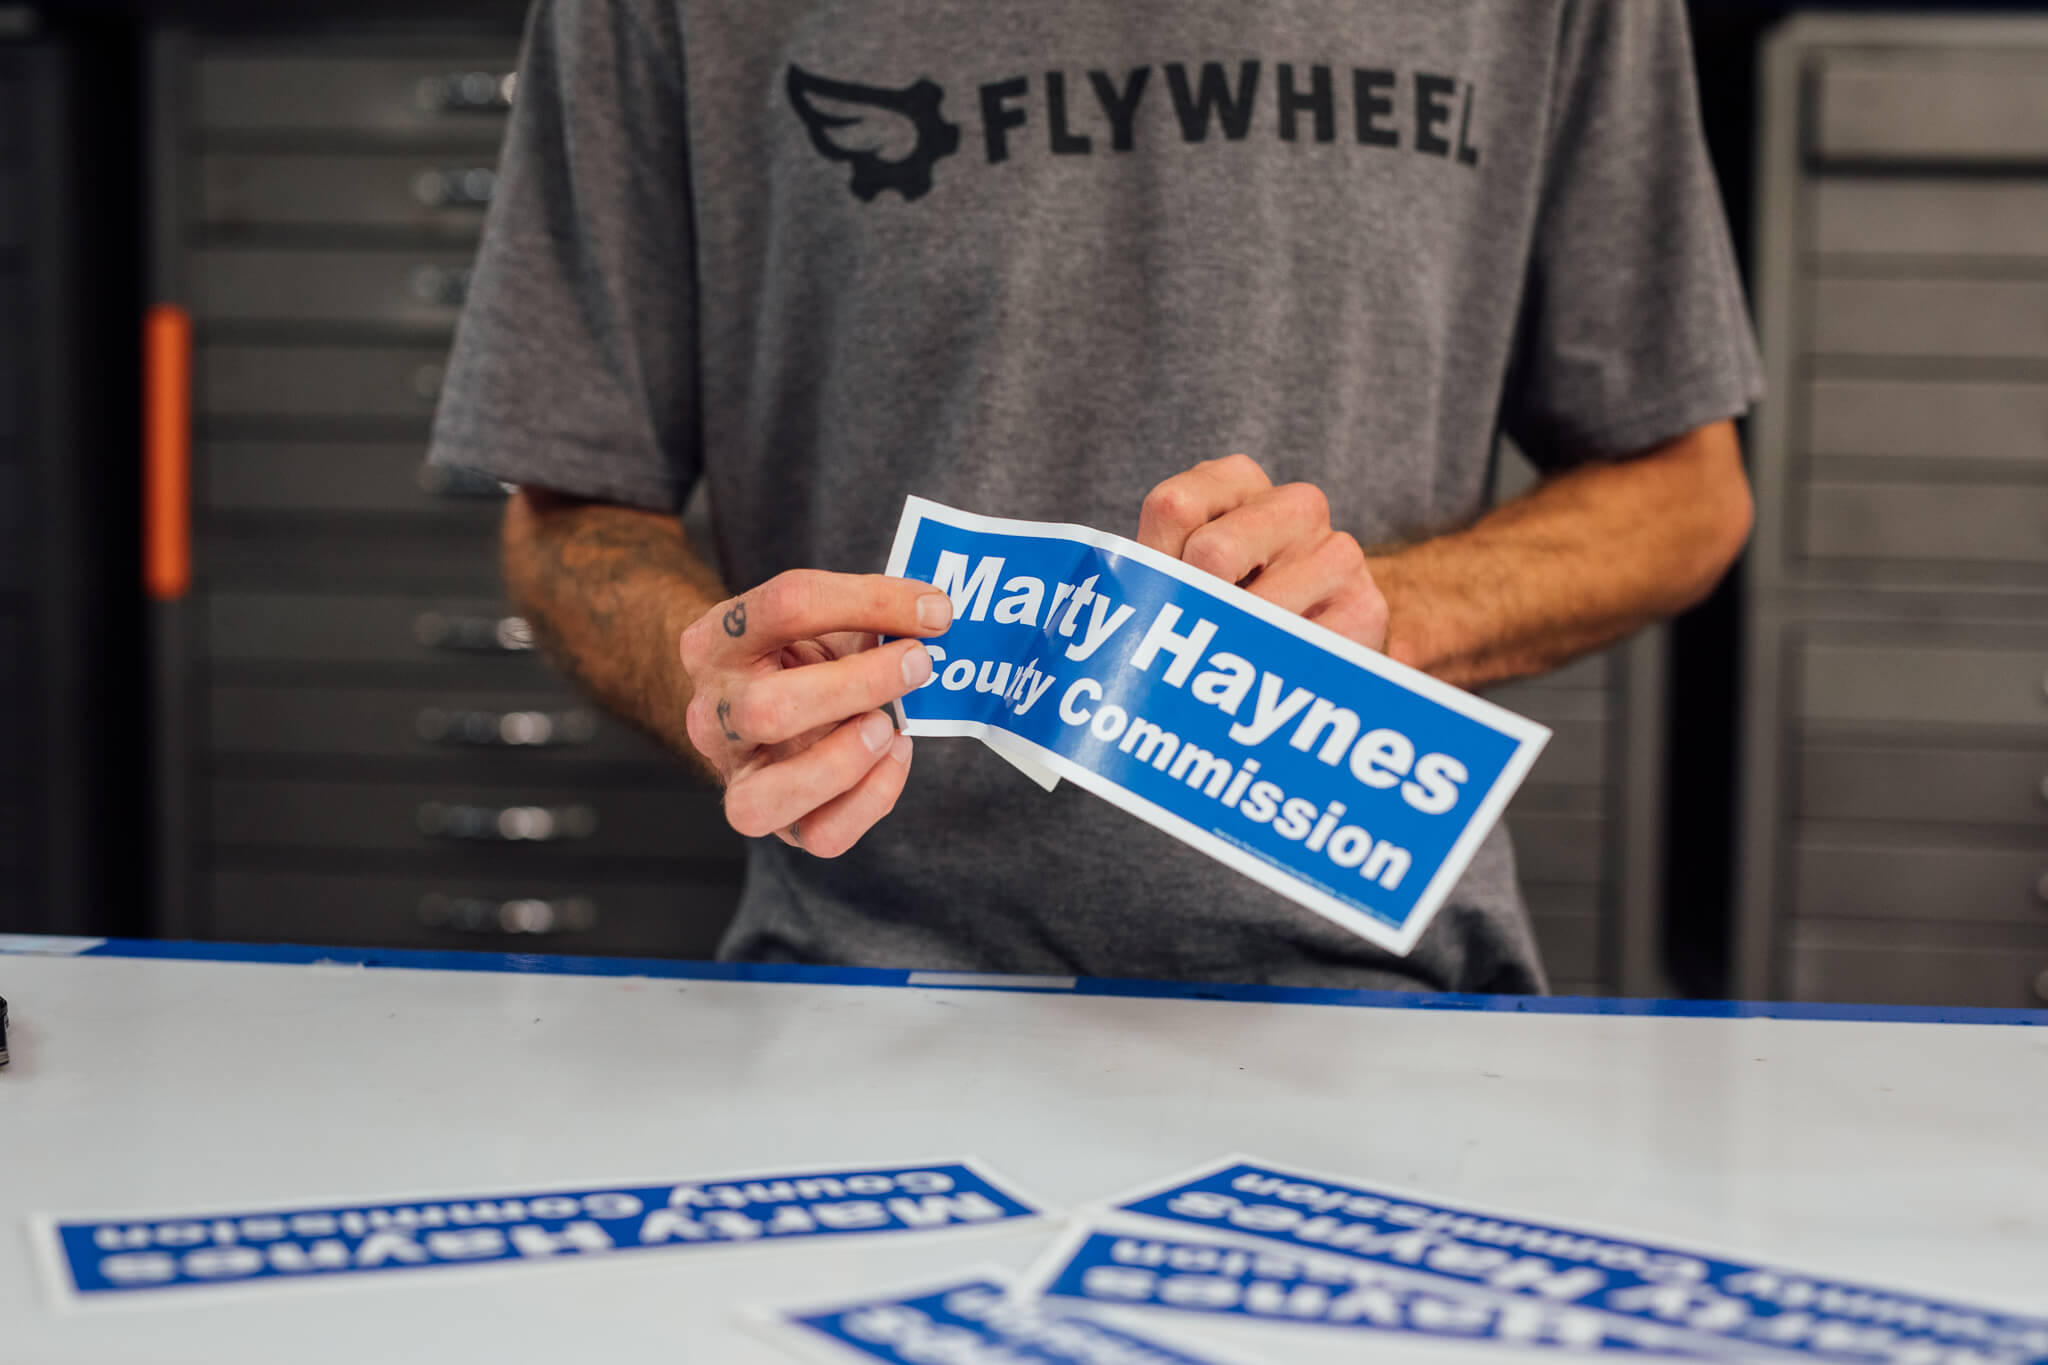 A Go Decals worker prepares to install a vinyl decal